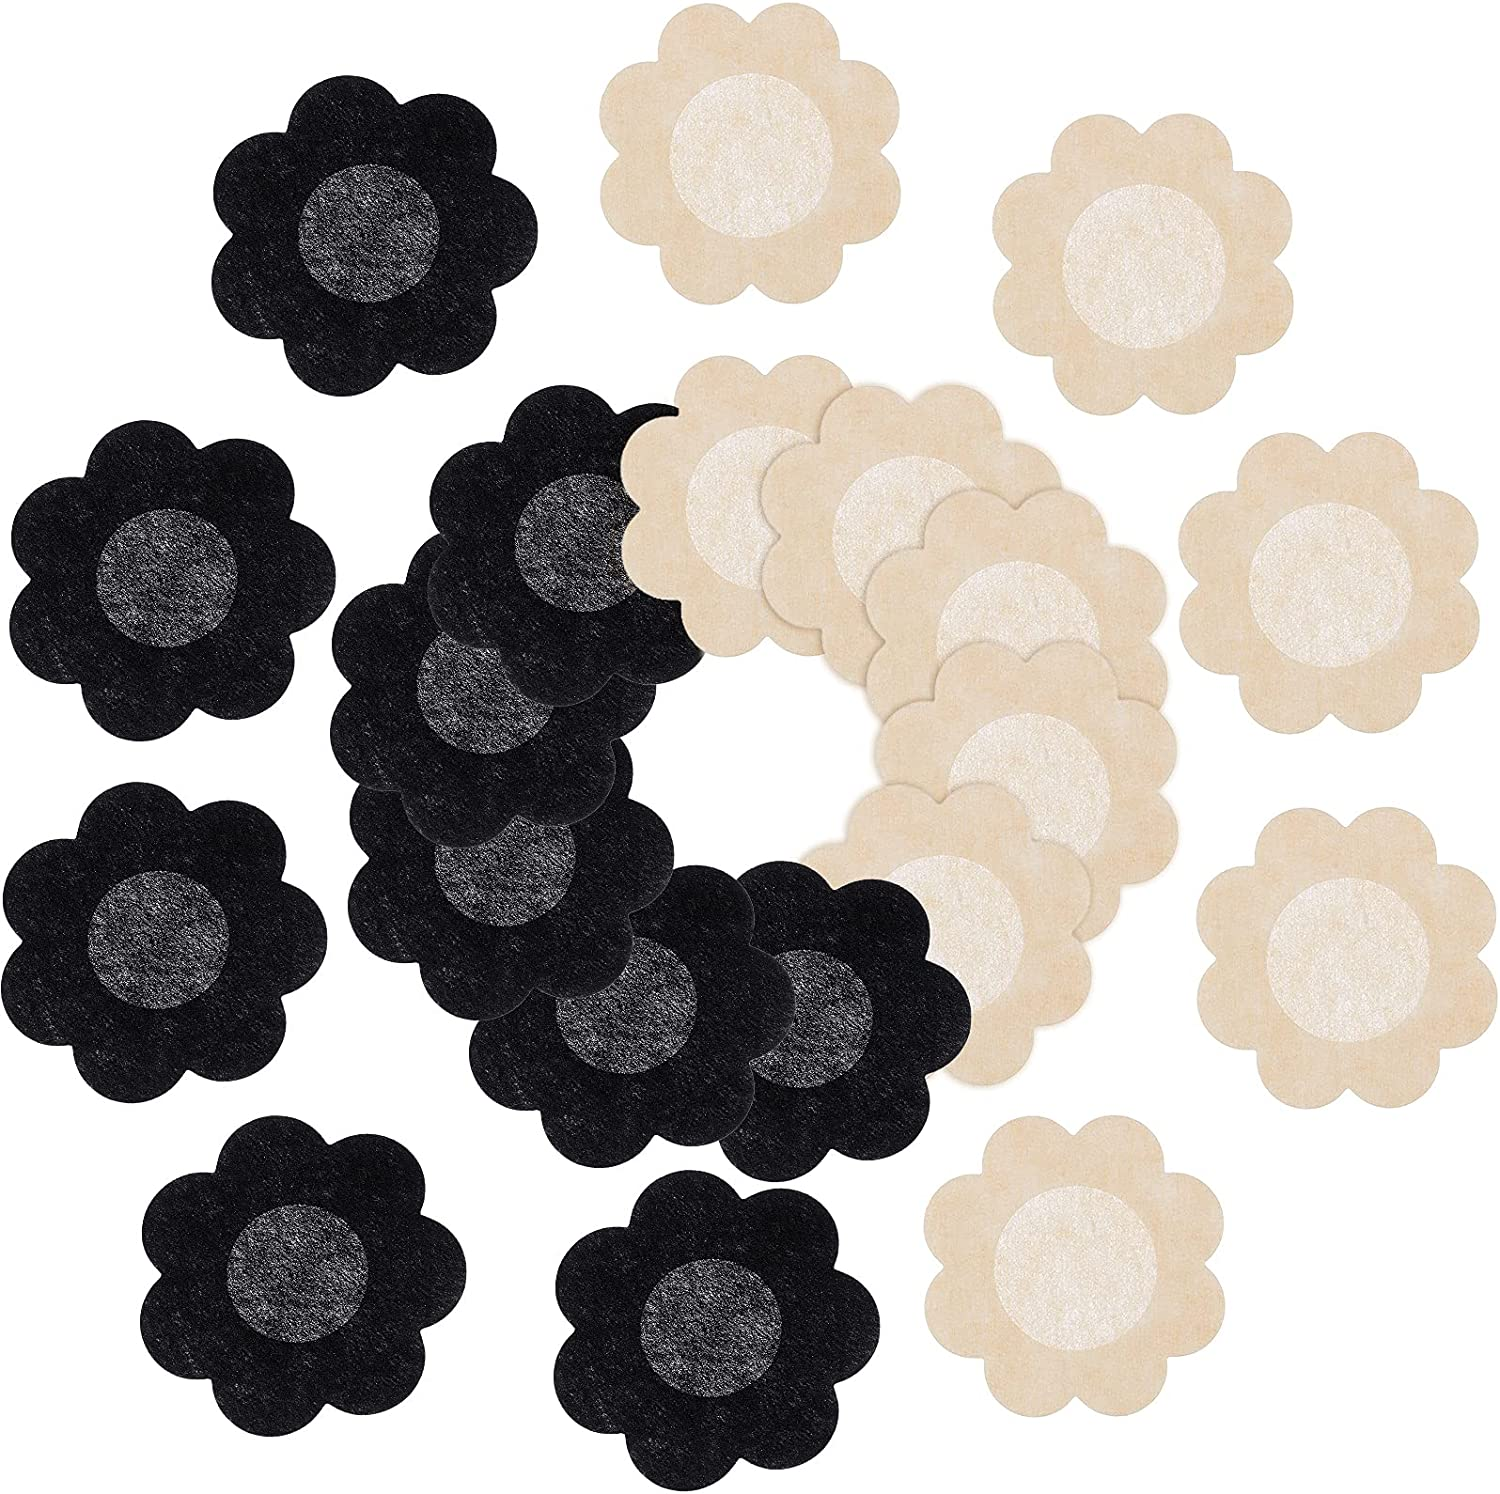 50 Pairs Nipple Covers specialty shop Petal Nip Super Special SALE held Disposable Breast